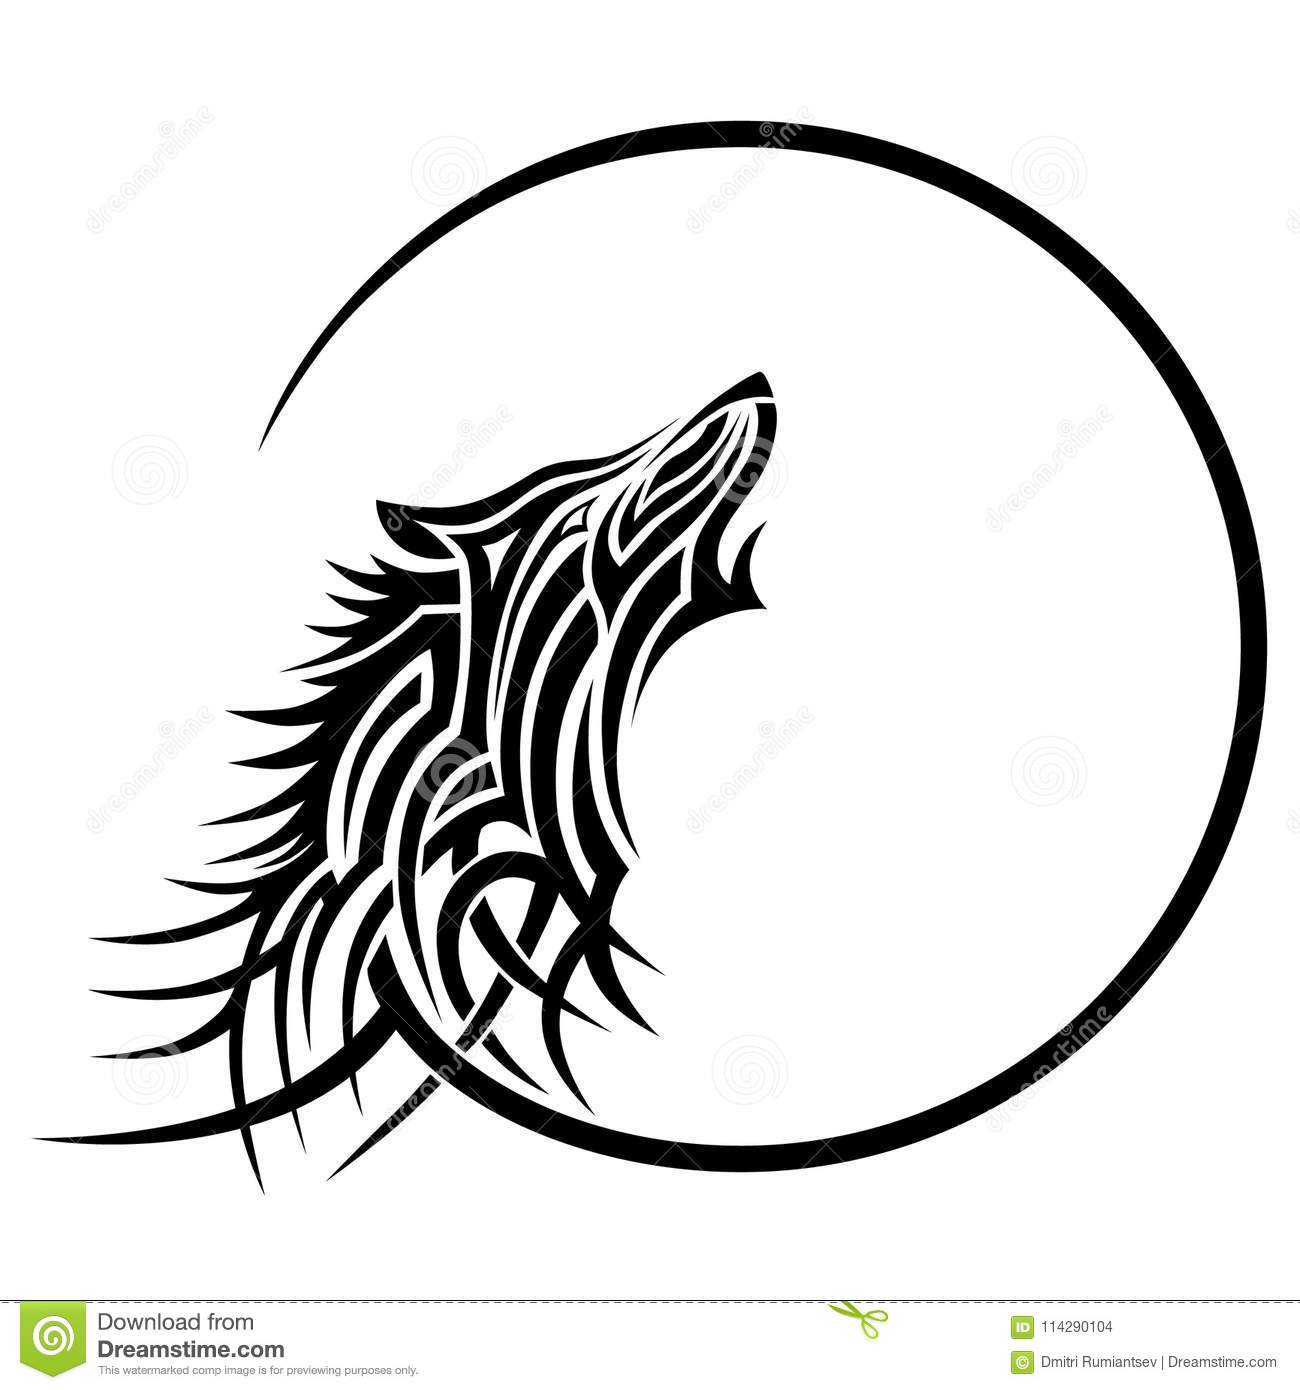 Wolf tattoo tribal design sketch stock vector for Tattoo style logo design